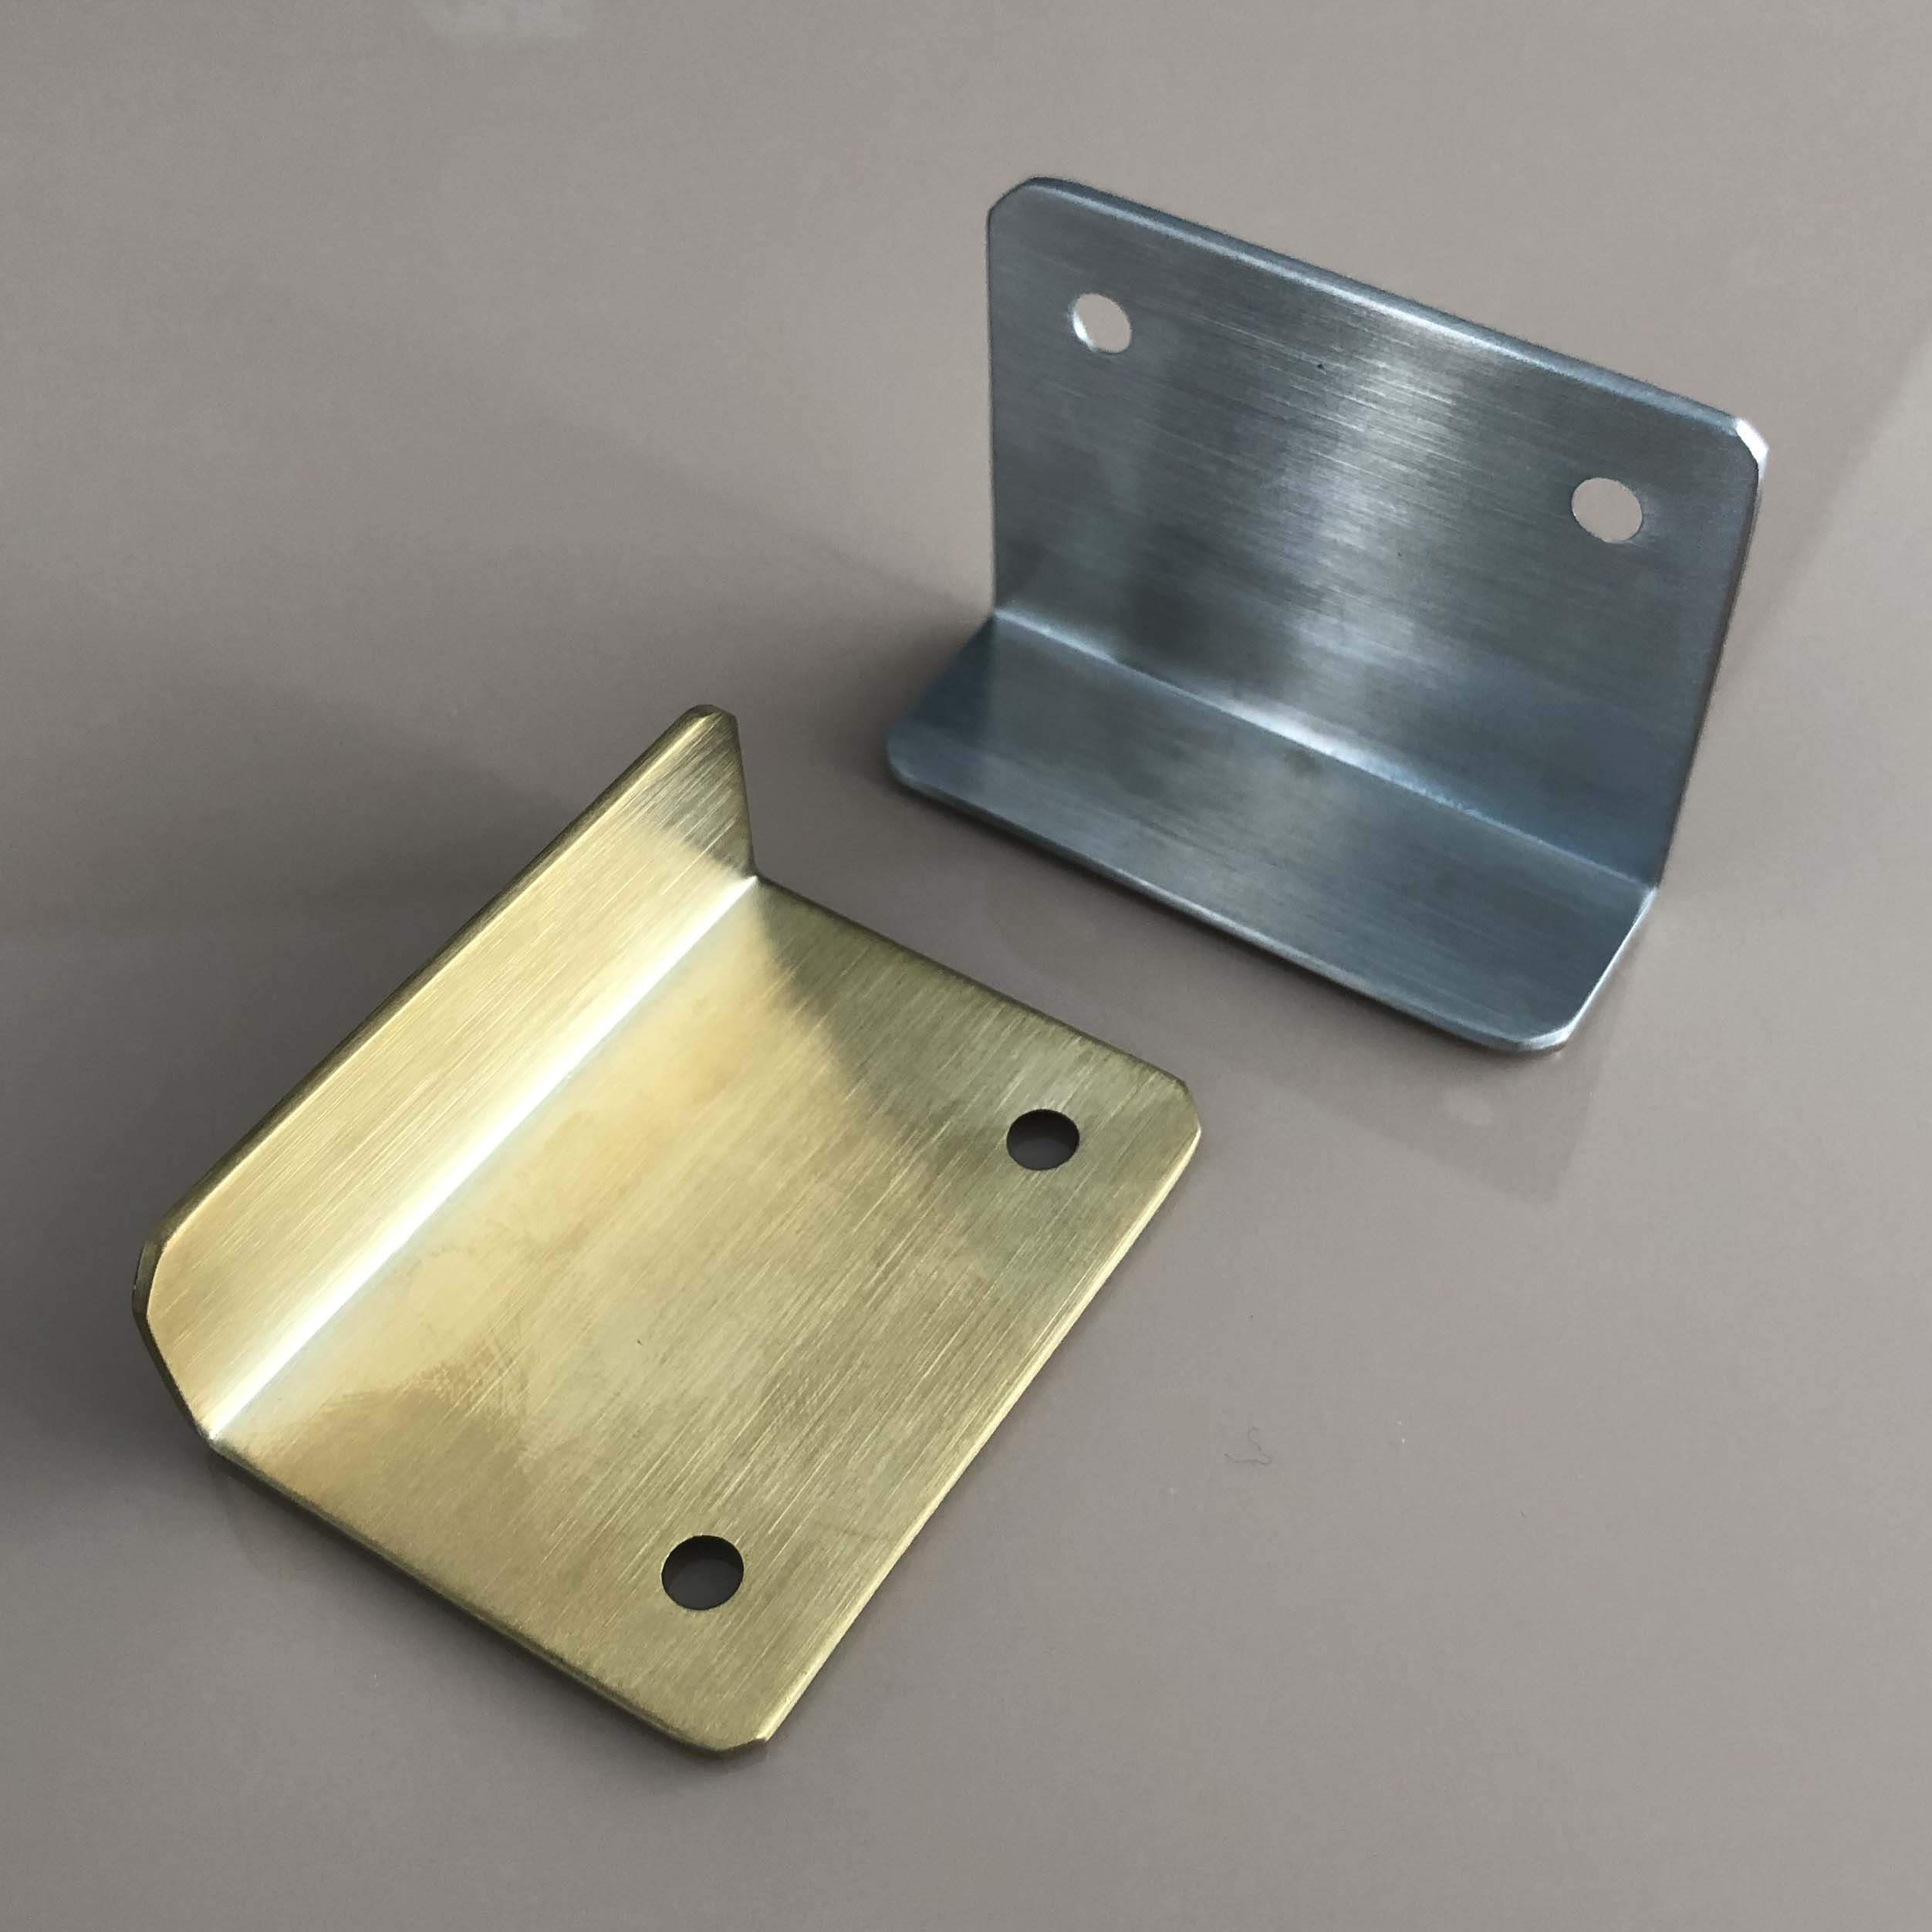 Modern Design Custom Made Stainless Steel Furniture Kitchen Cabinet Cupboard Drawer Pull Handle View Custom Made Stainless Steel Handle Uke Product Details From Foshan Ulike Home Supplies Co Ltd On Alibaba Com